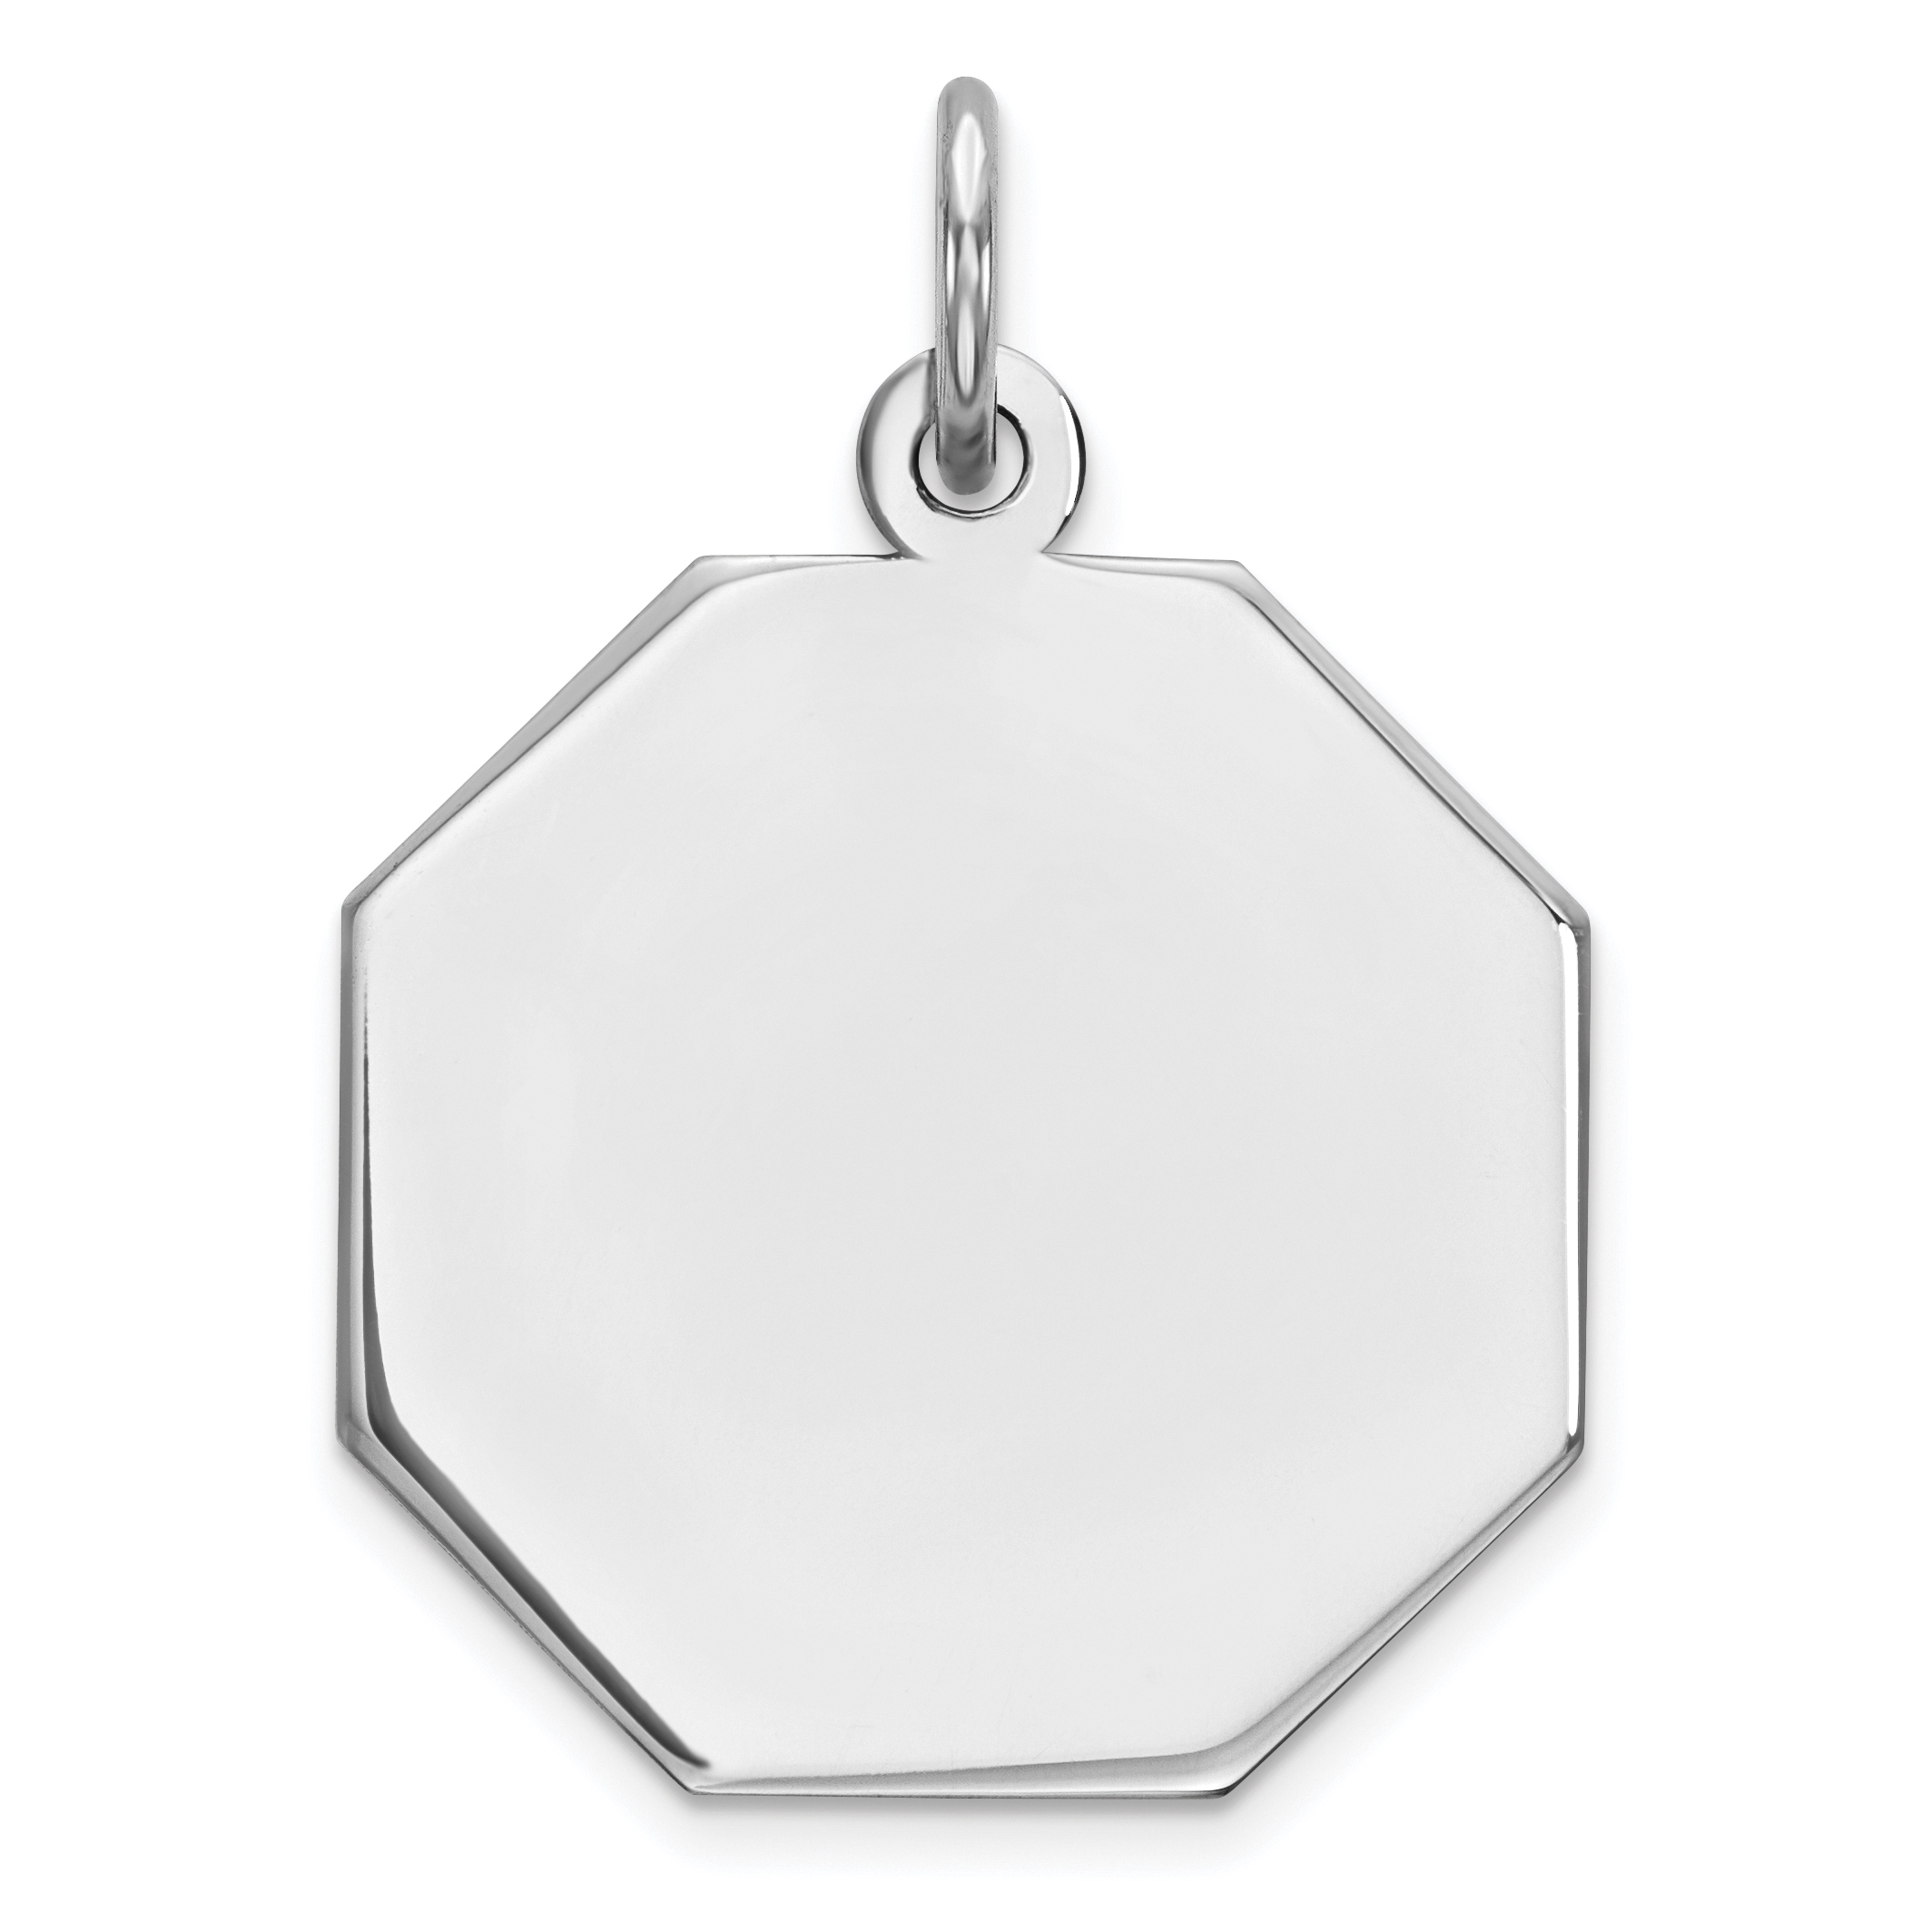 925 Sterling Silver Rh Plt Engraveable Octagon Front Back Disc Pendant Charm Necklace Engravable Octagonal Fine Jewelry Gifts For Women For Her - image 2 de 2